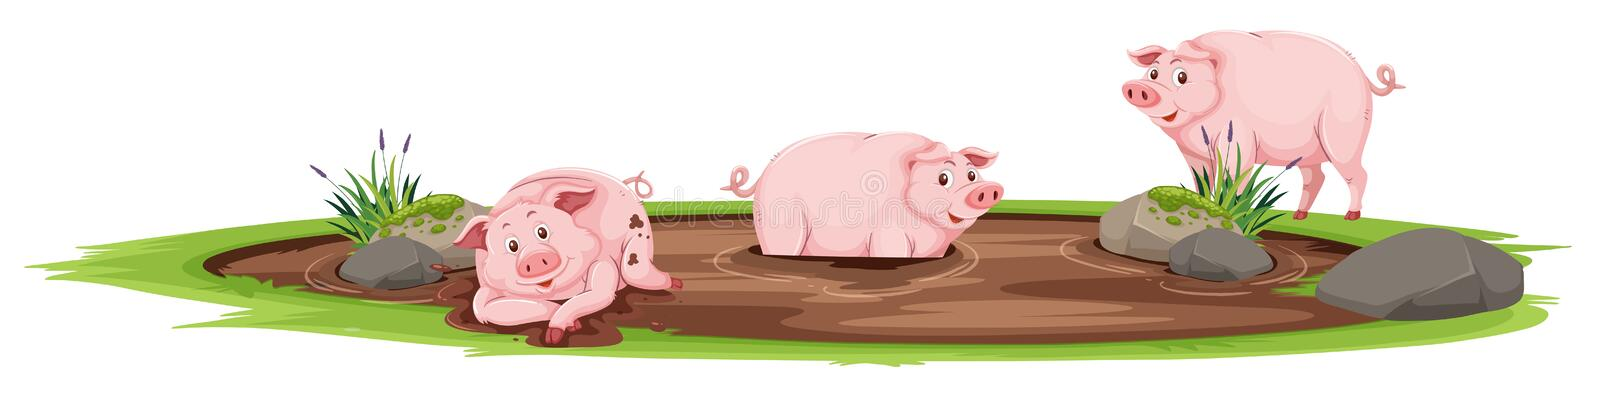 Pigs playing in the mud stock illustration